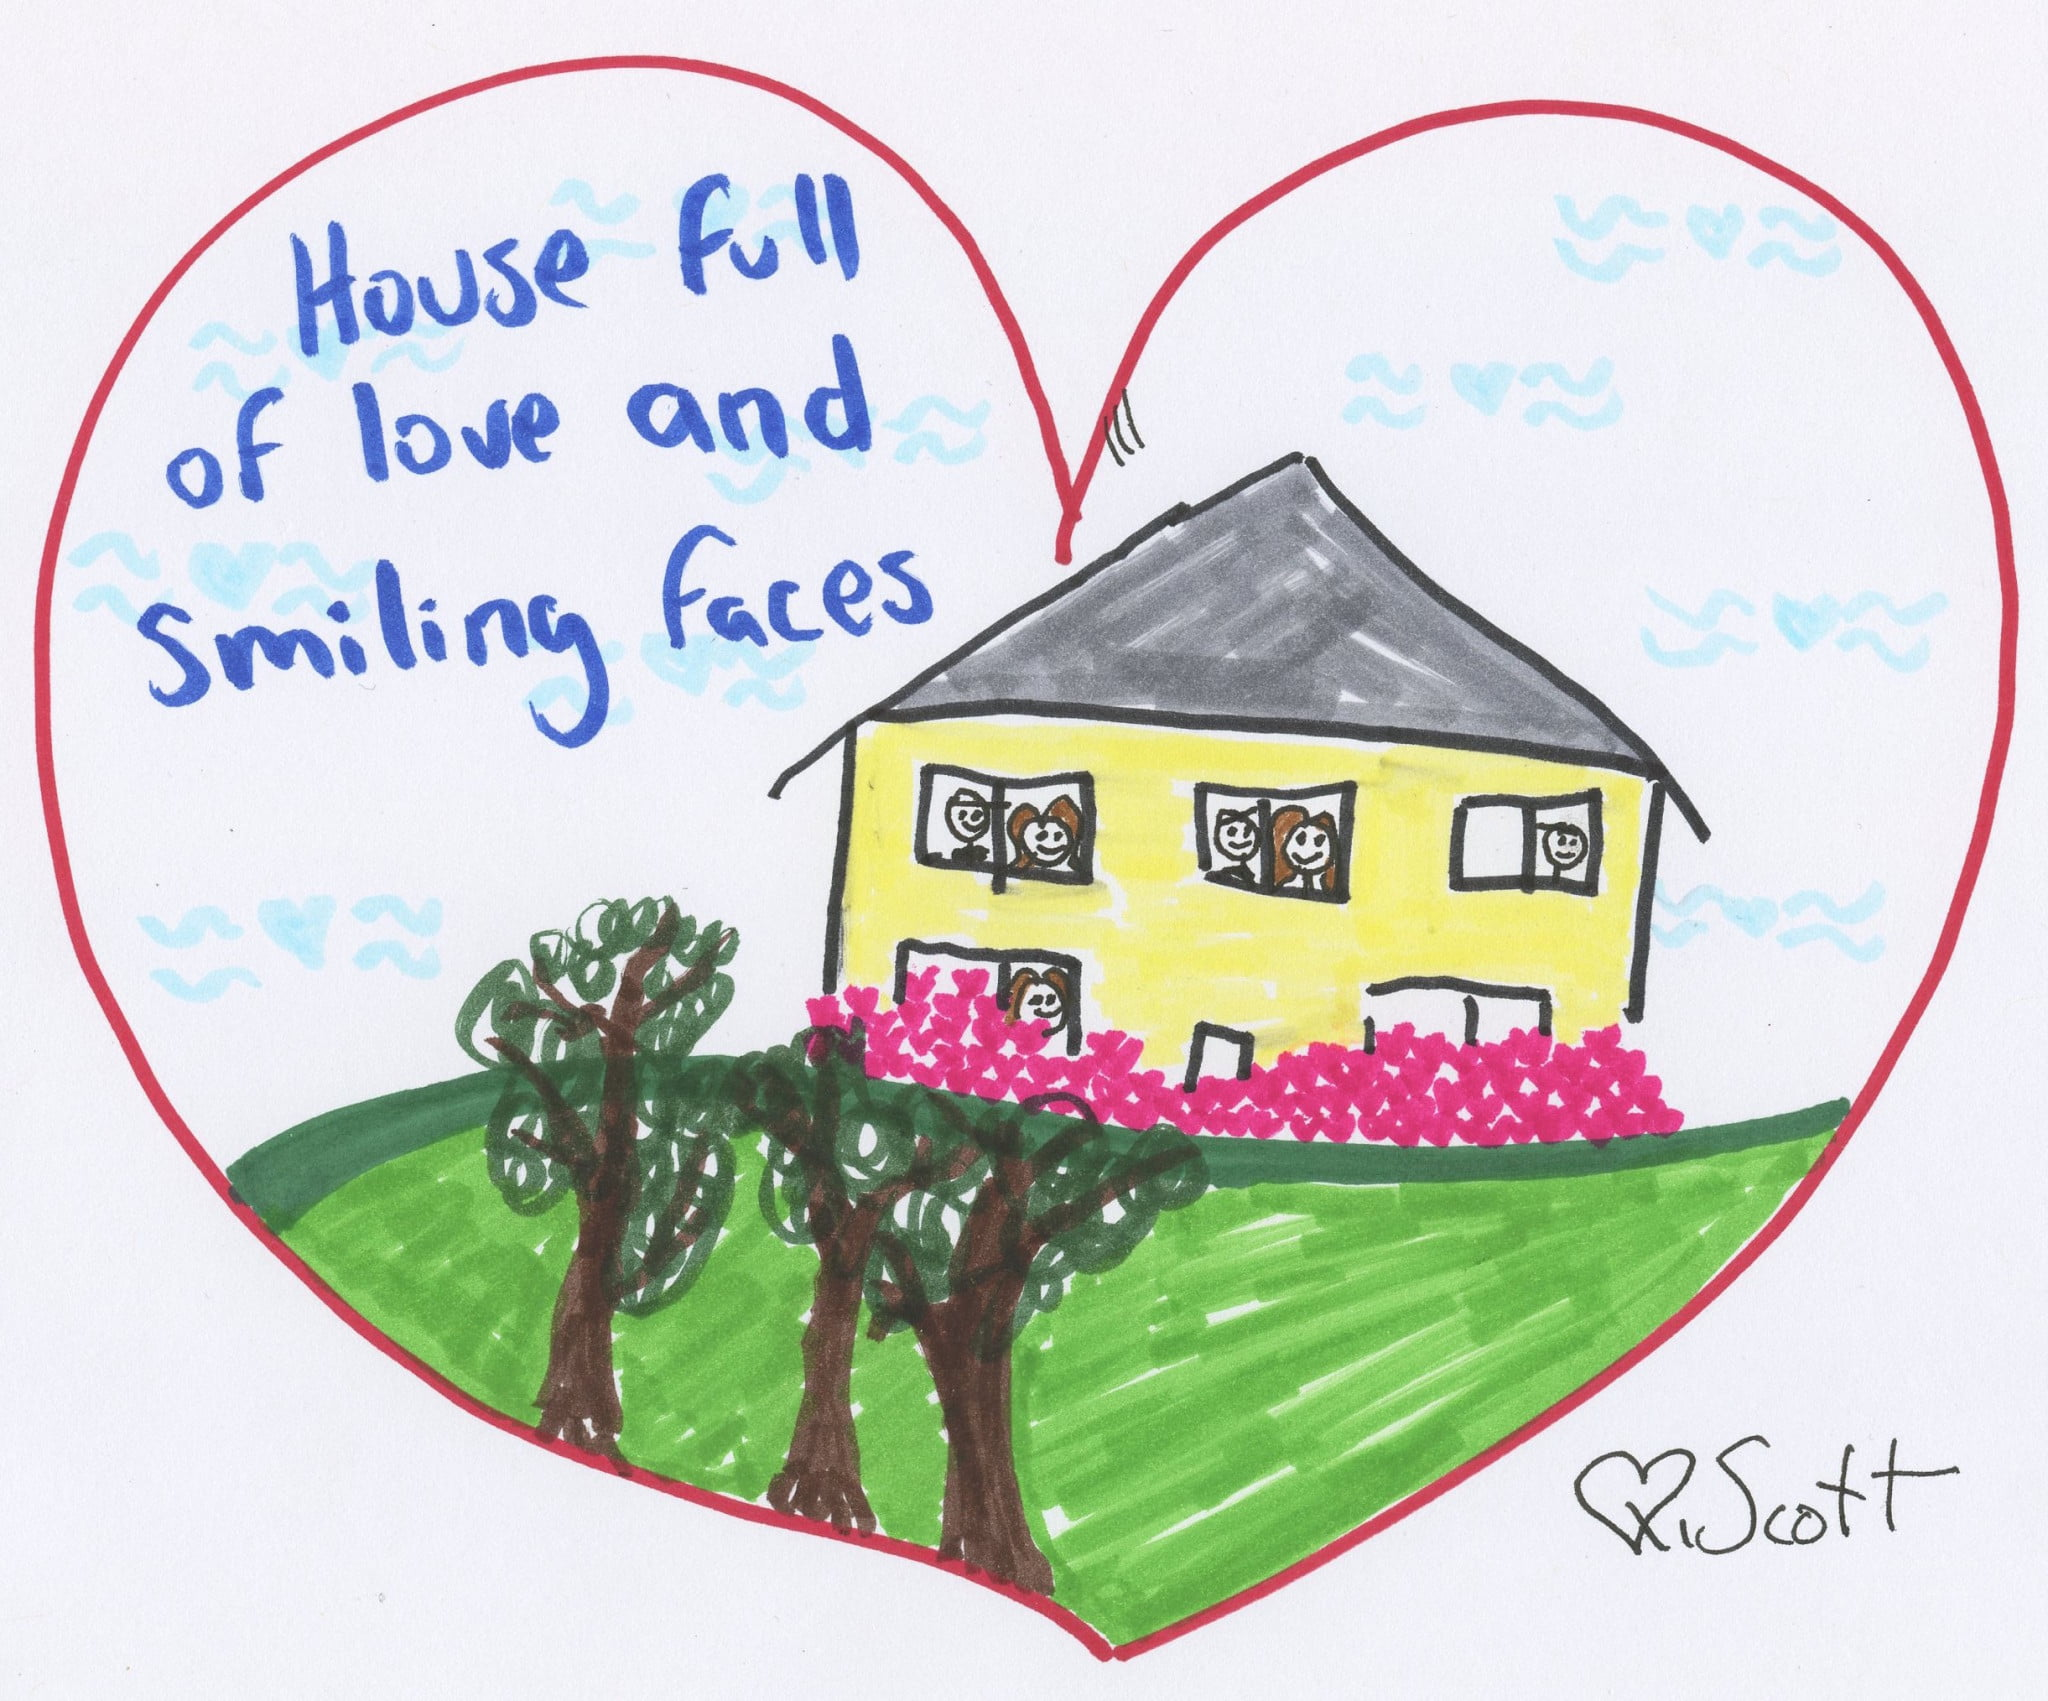 House full of love and smiling faces